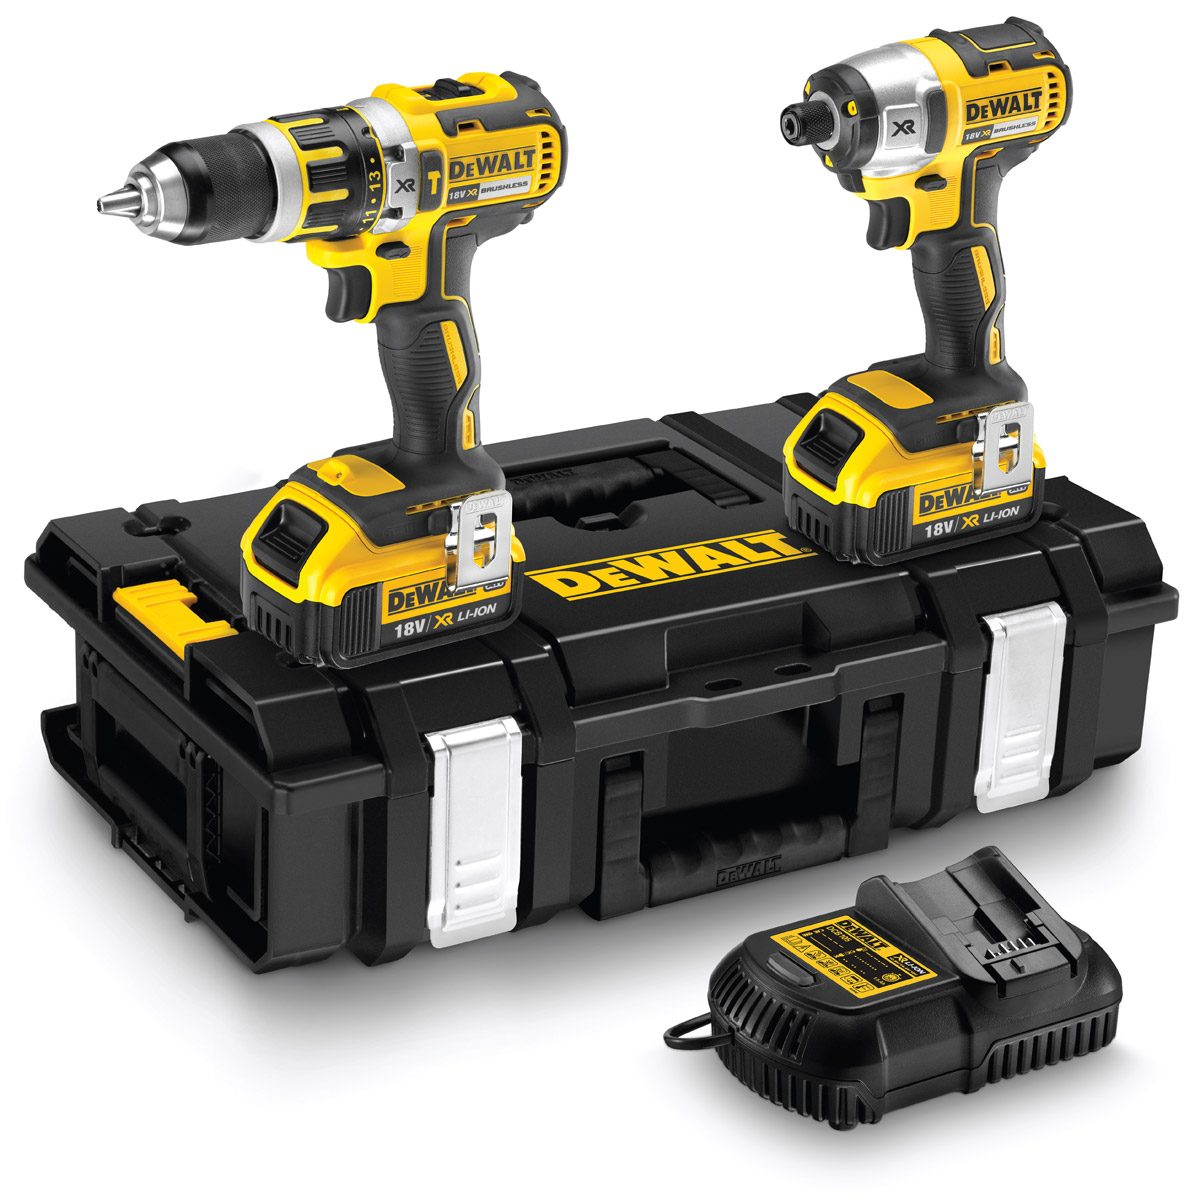 DEWALT DCK250M2 18V BRUSHLESS TWIN PACK WITH 2X 4.0AH LI-ION BATTERIES